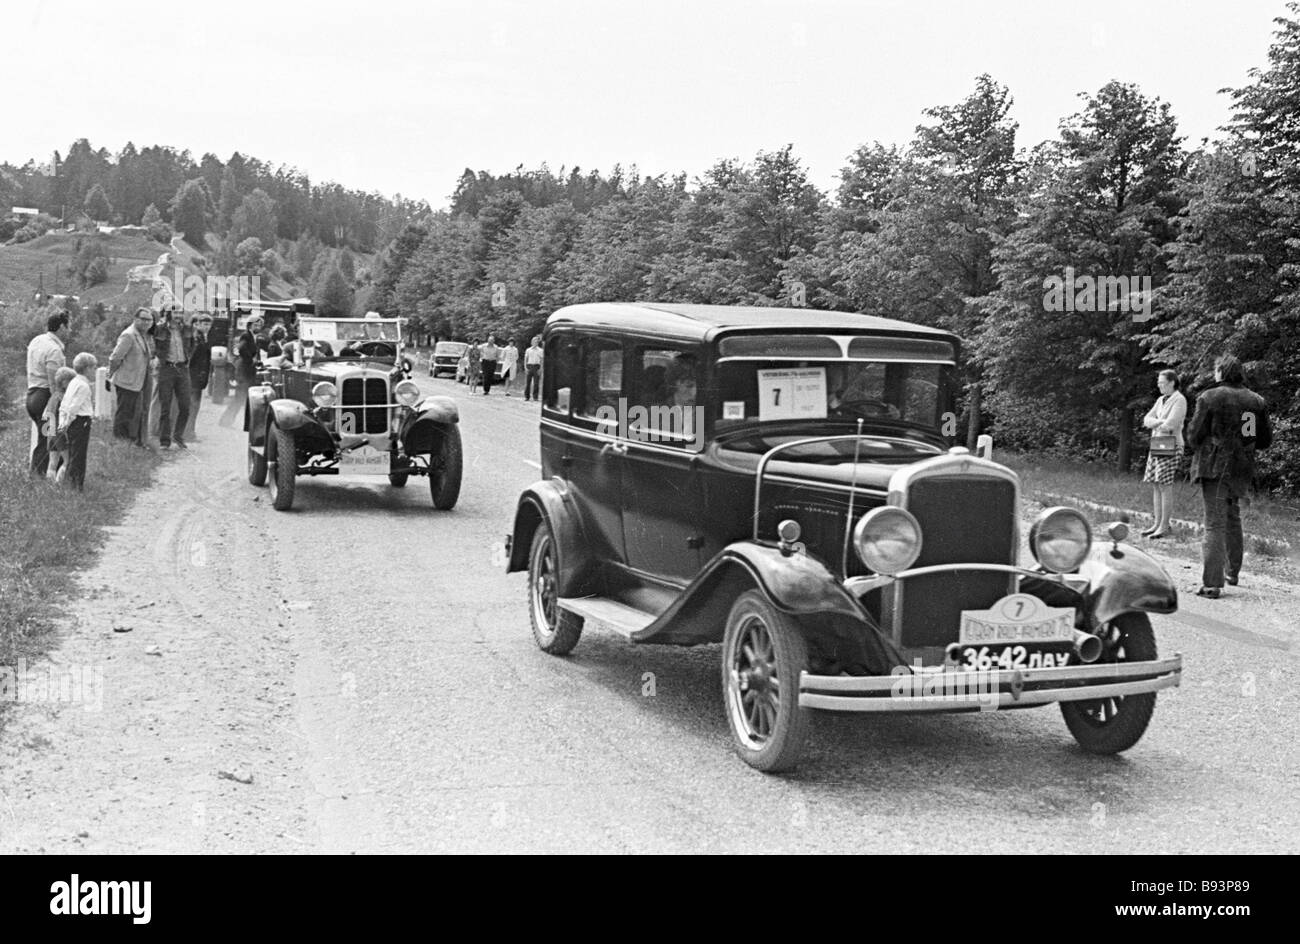 Antique car club members on old cars - Stock Image